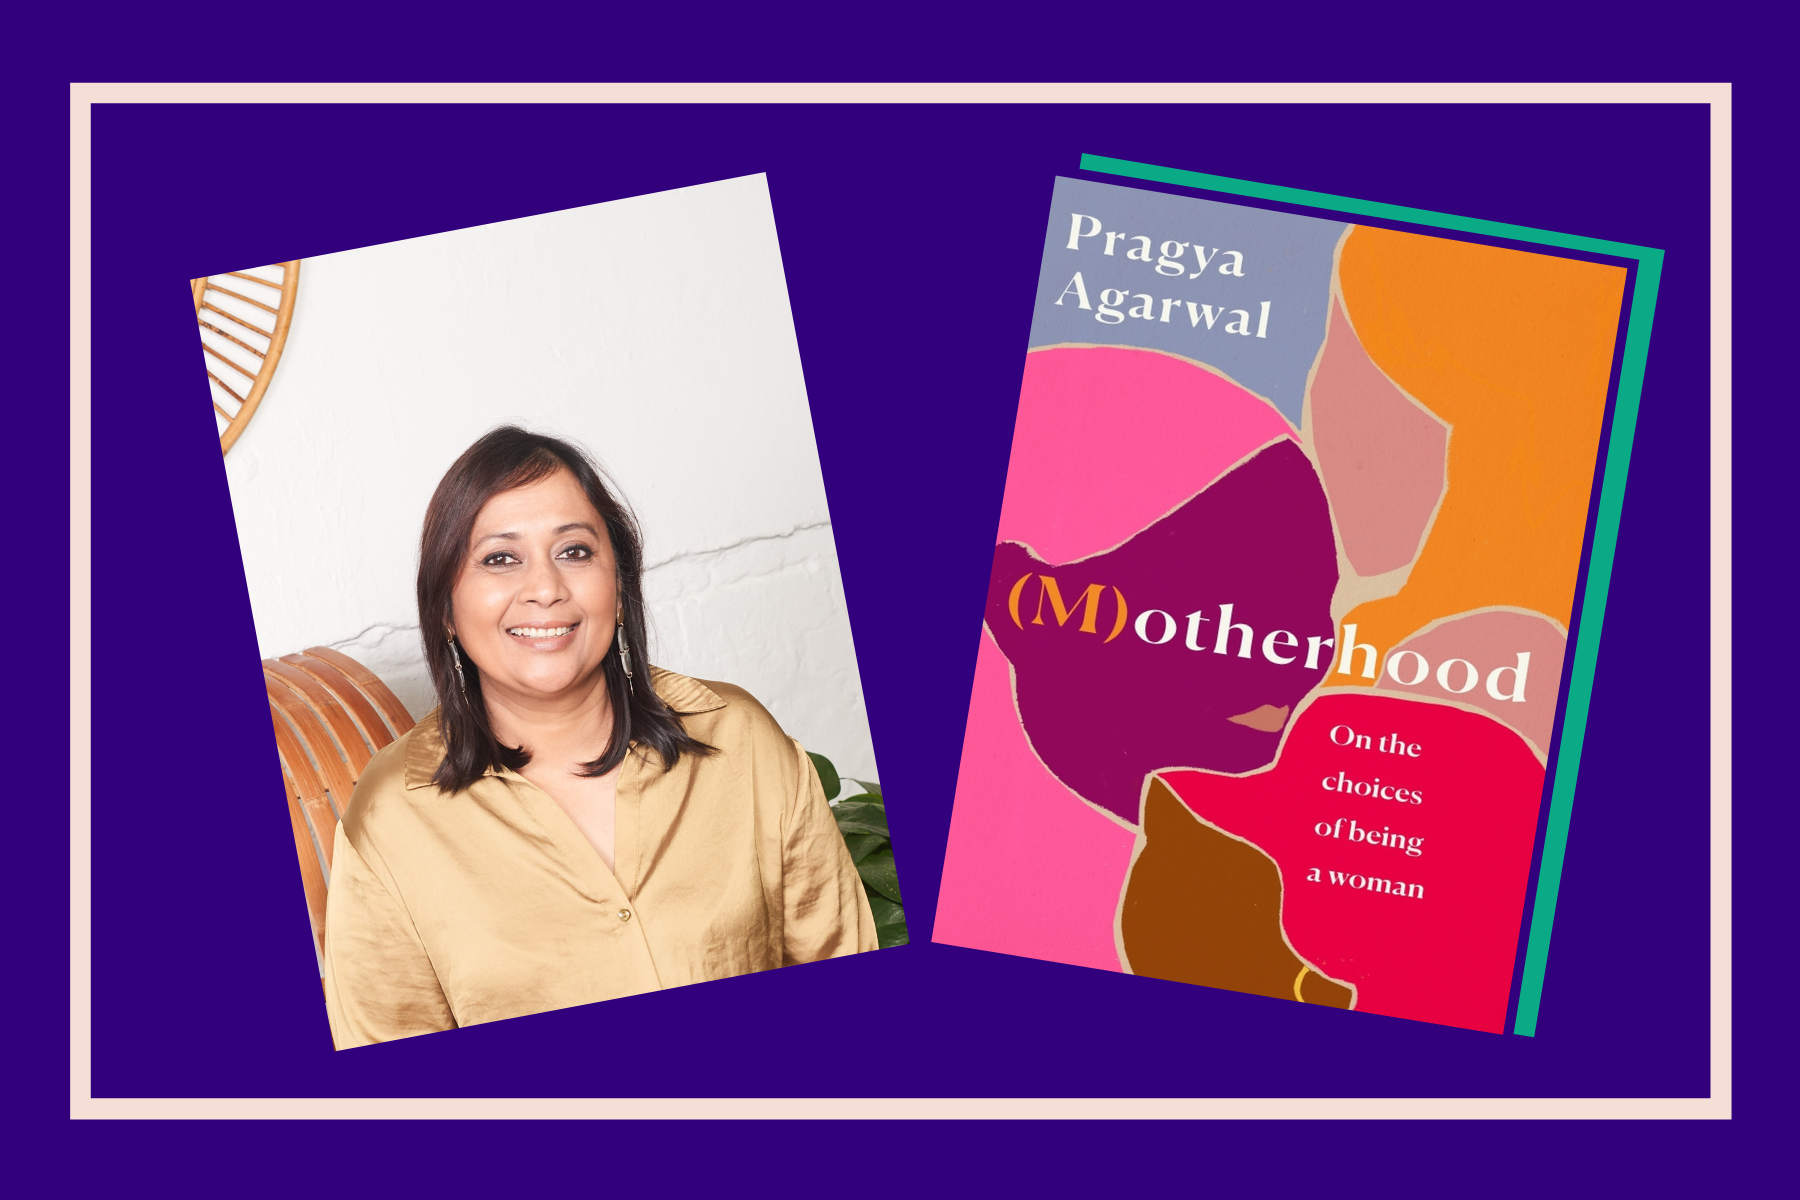 (M)otherhood: On the choices of being a woman book review